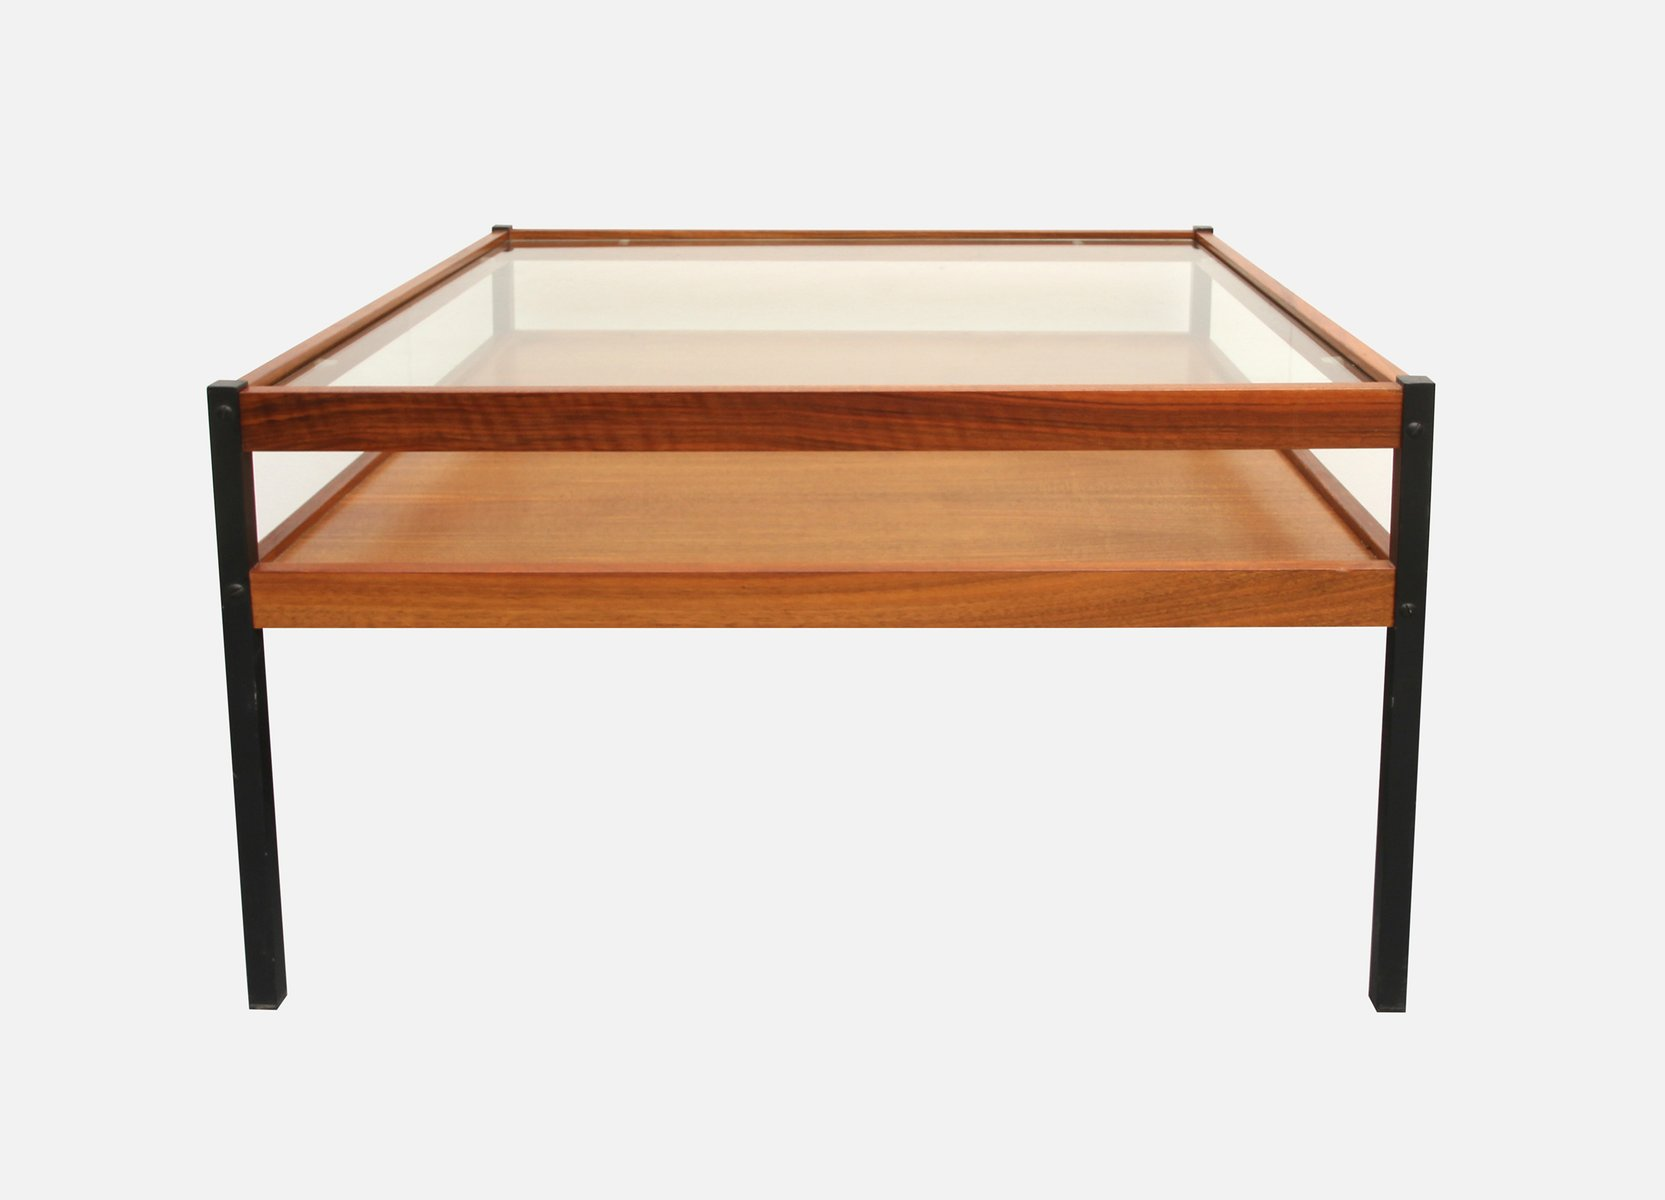 walnut veneer  glass coffee table s for sale at pamono - walnut veneer  glass coffee table s